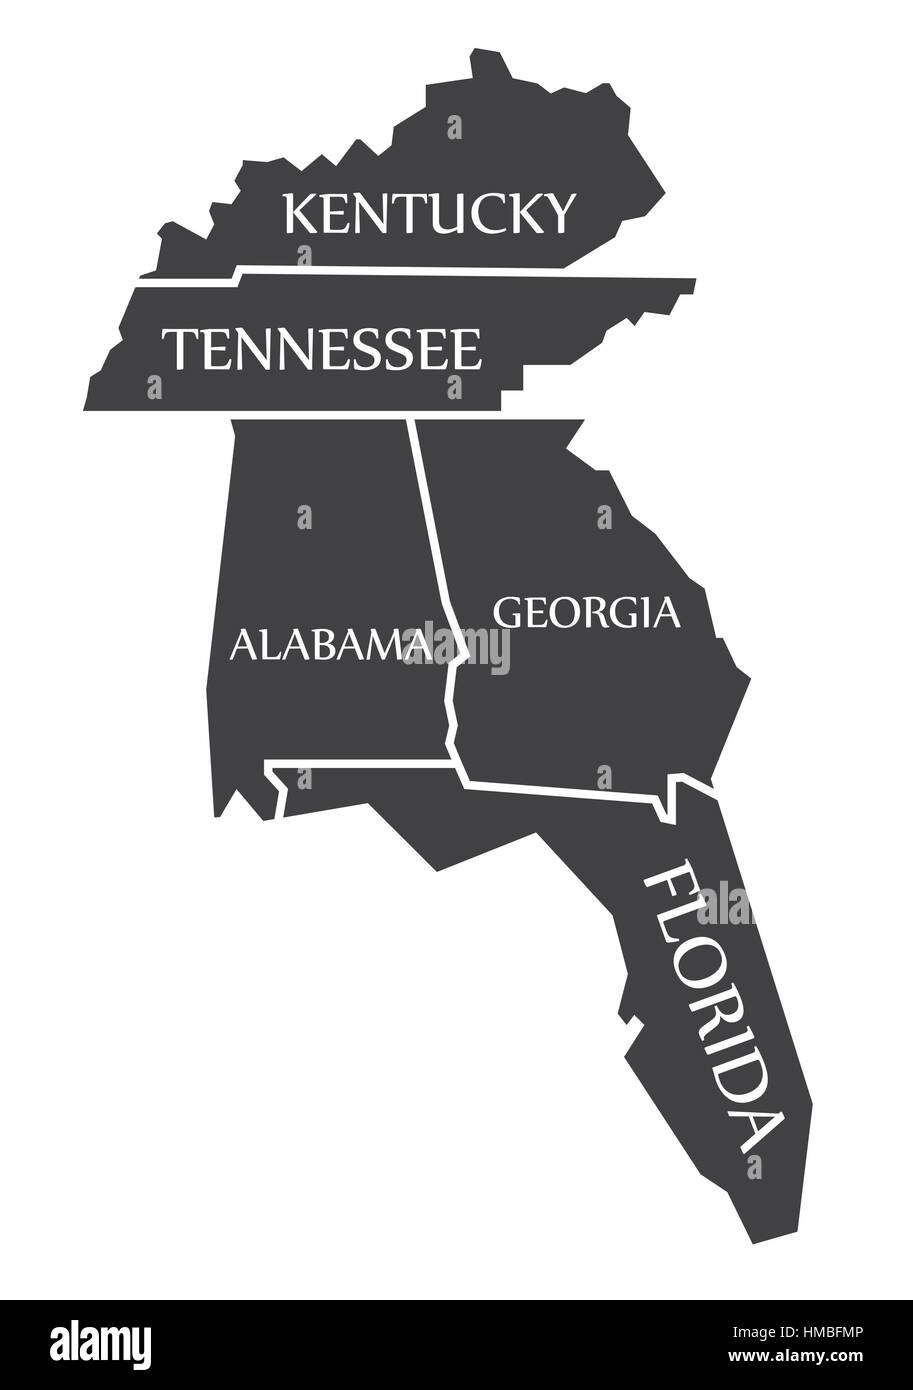 Map Of Georgia Florida And Alabama.Kentucky Tennessee Alabama Georgia Florida Map Labelled